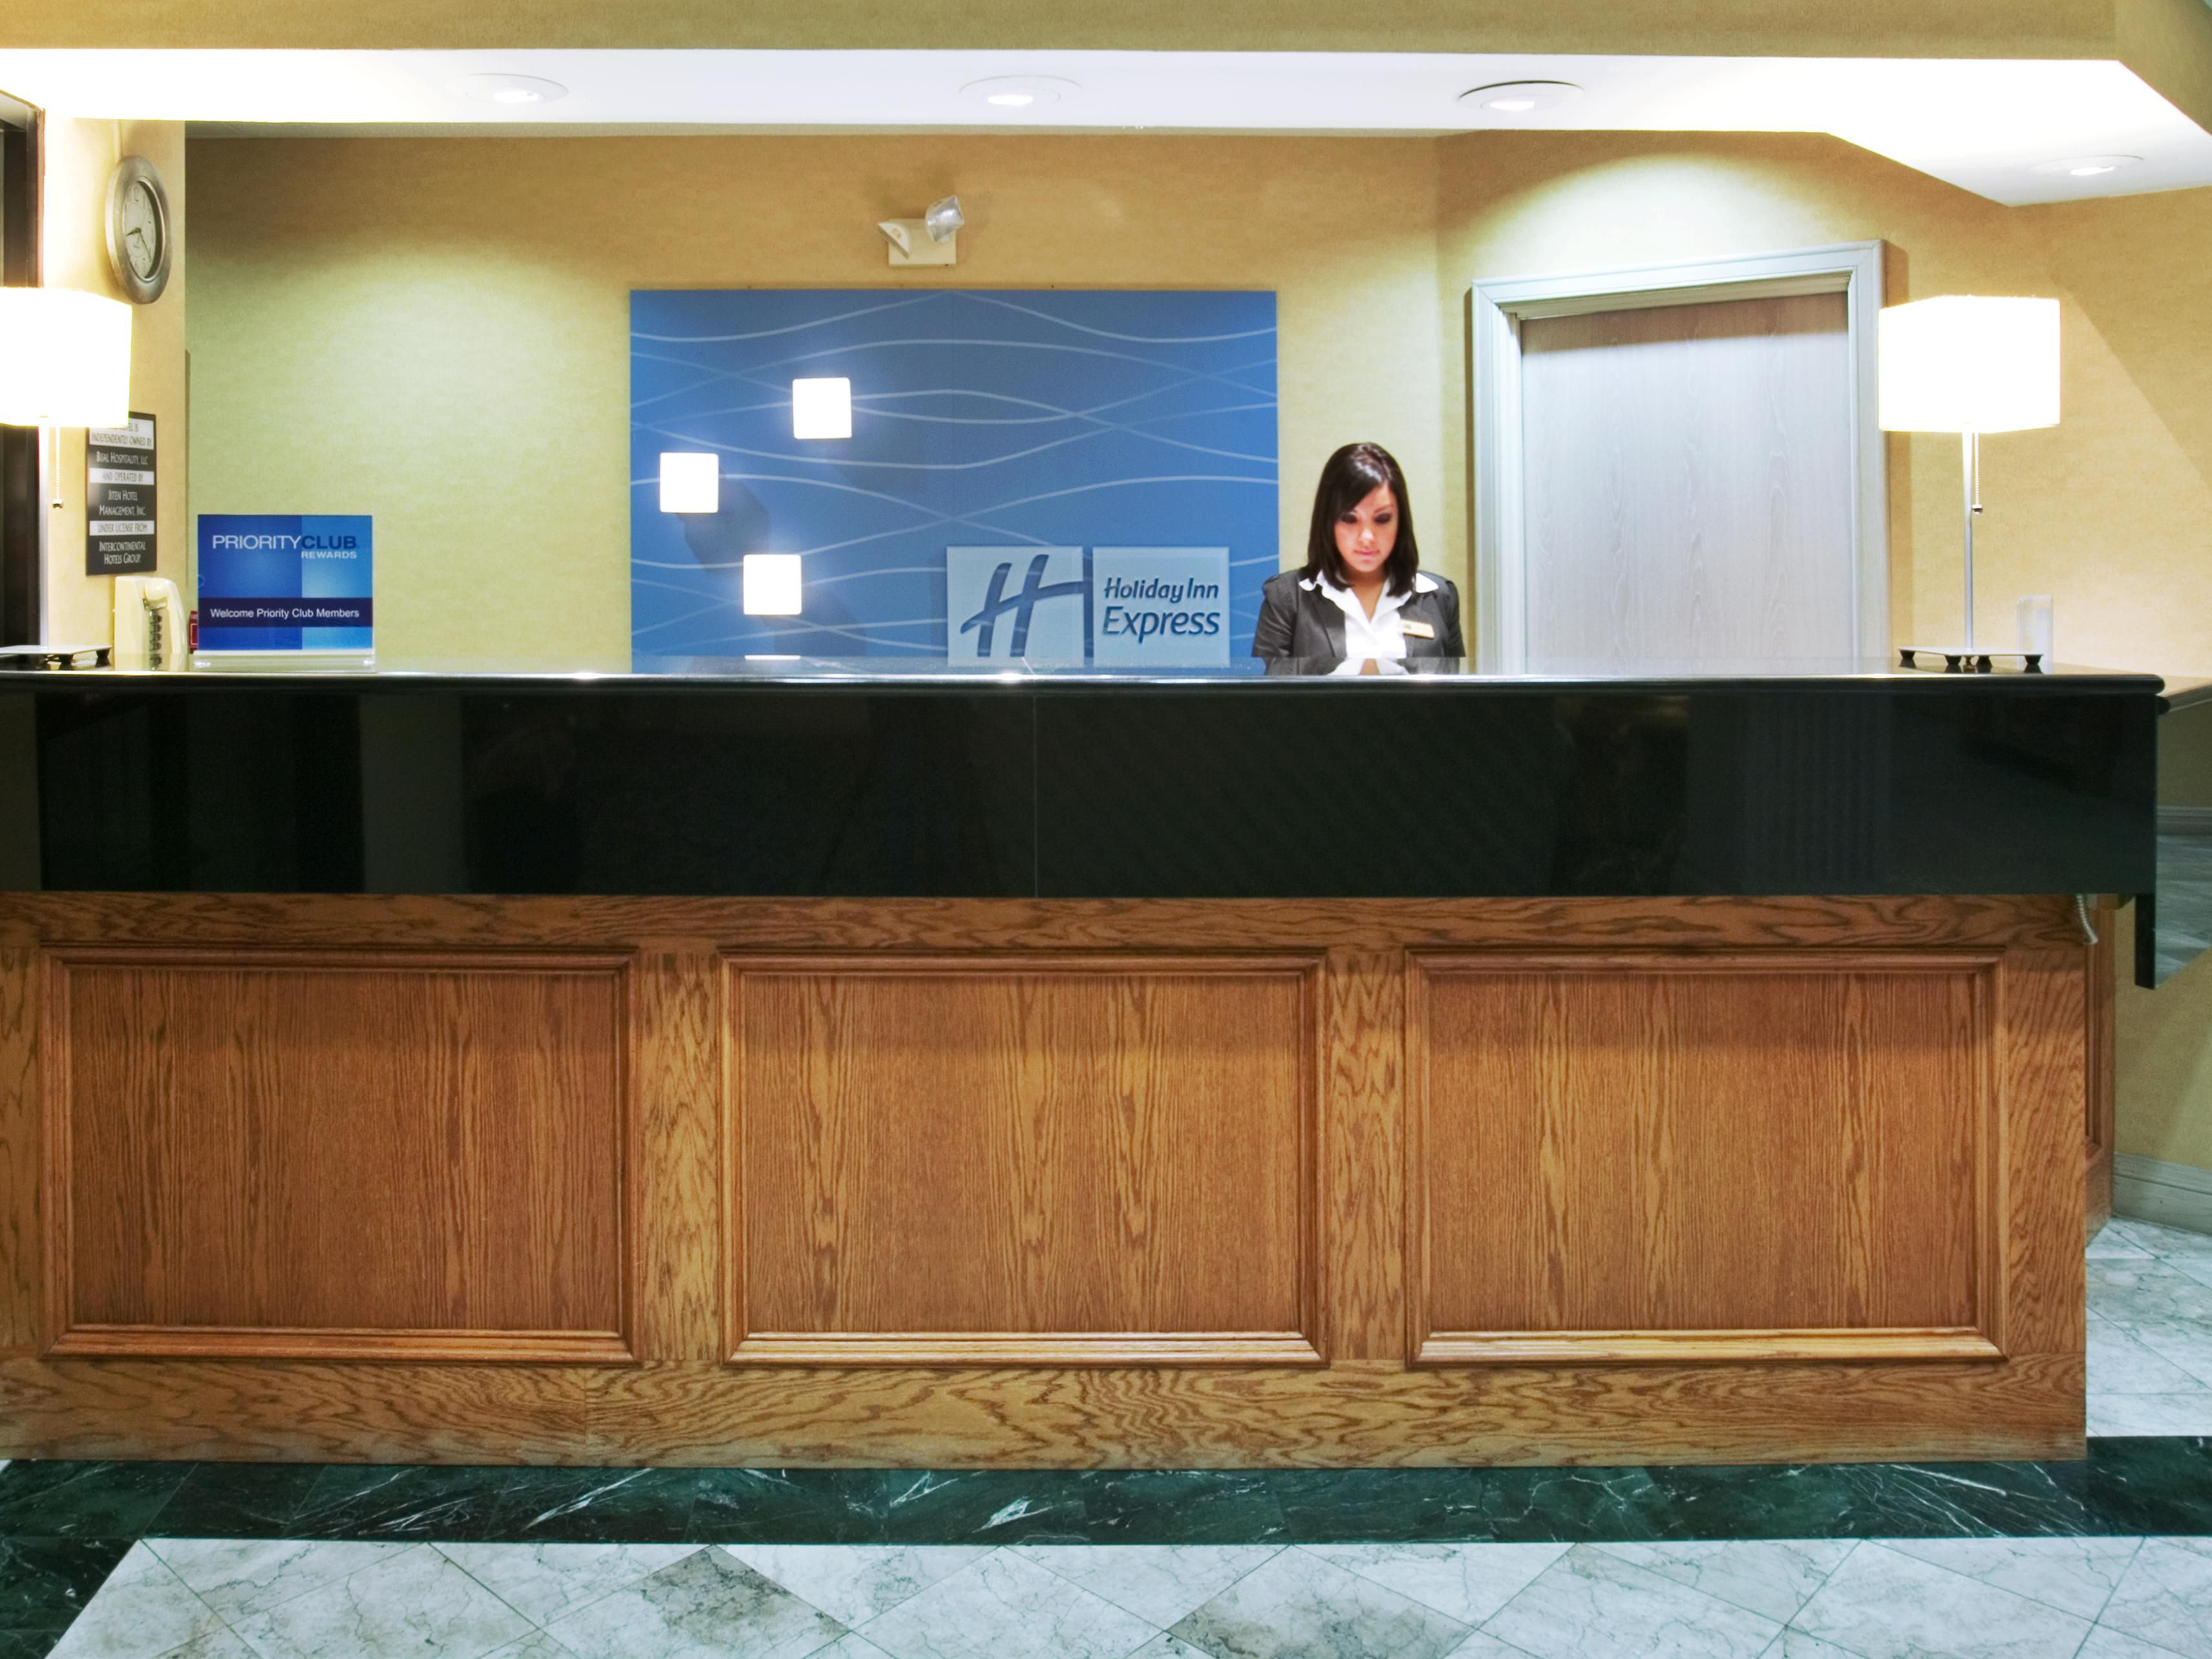 Holiday Inn Express Dallas Front Desk